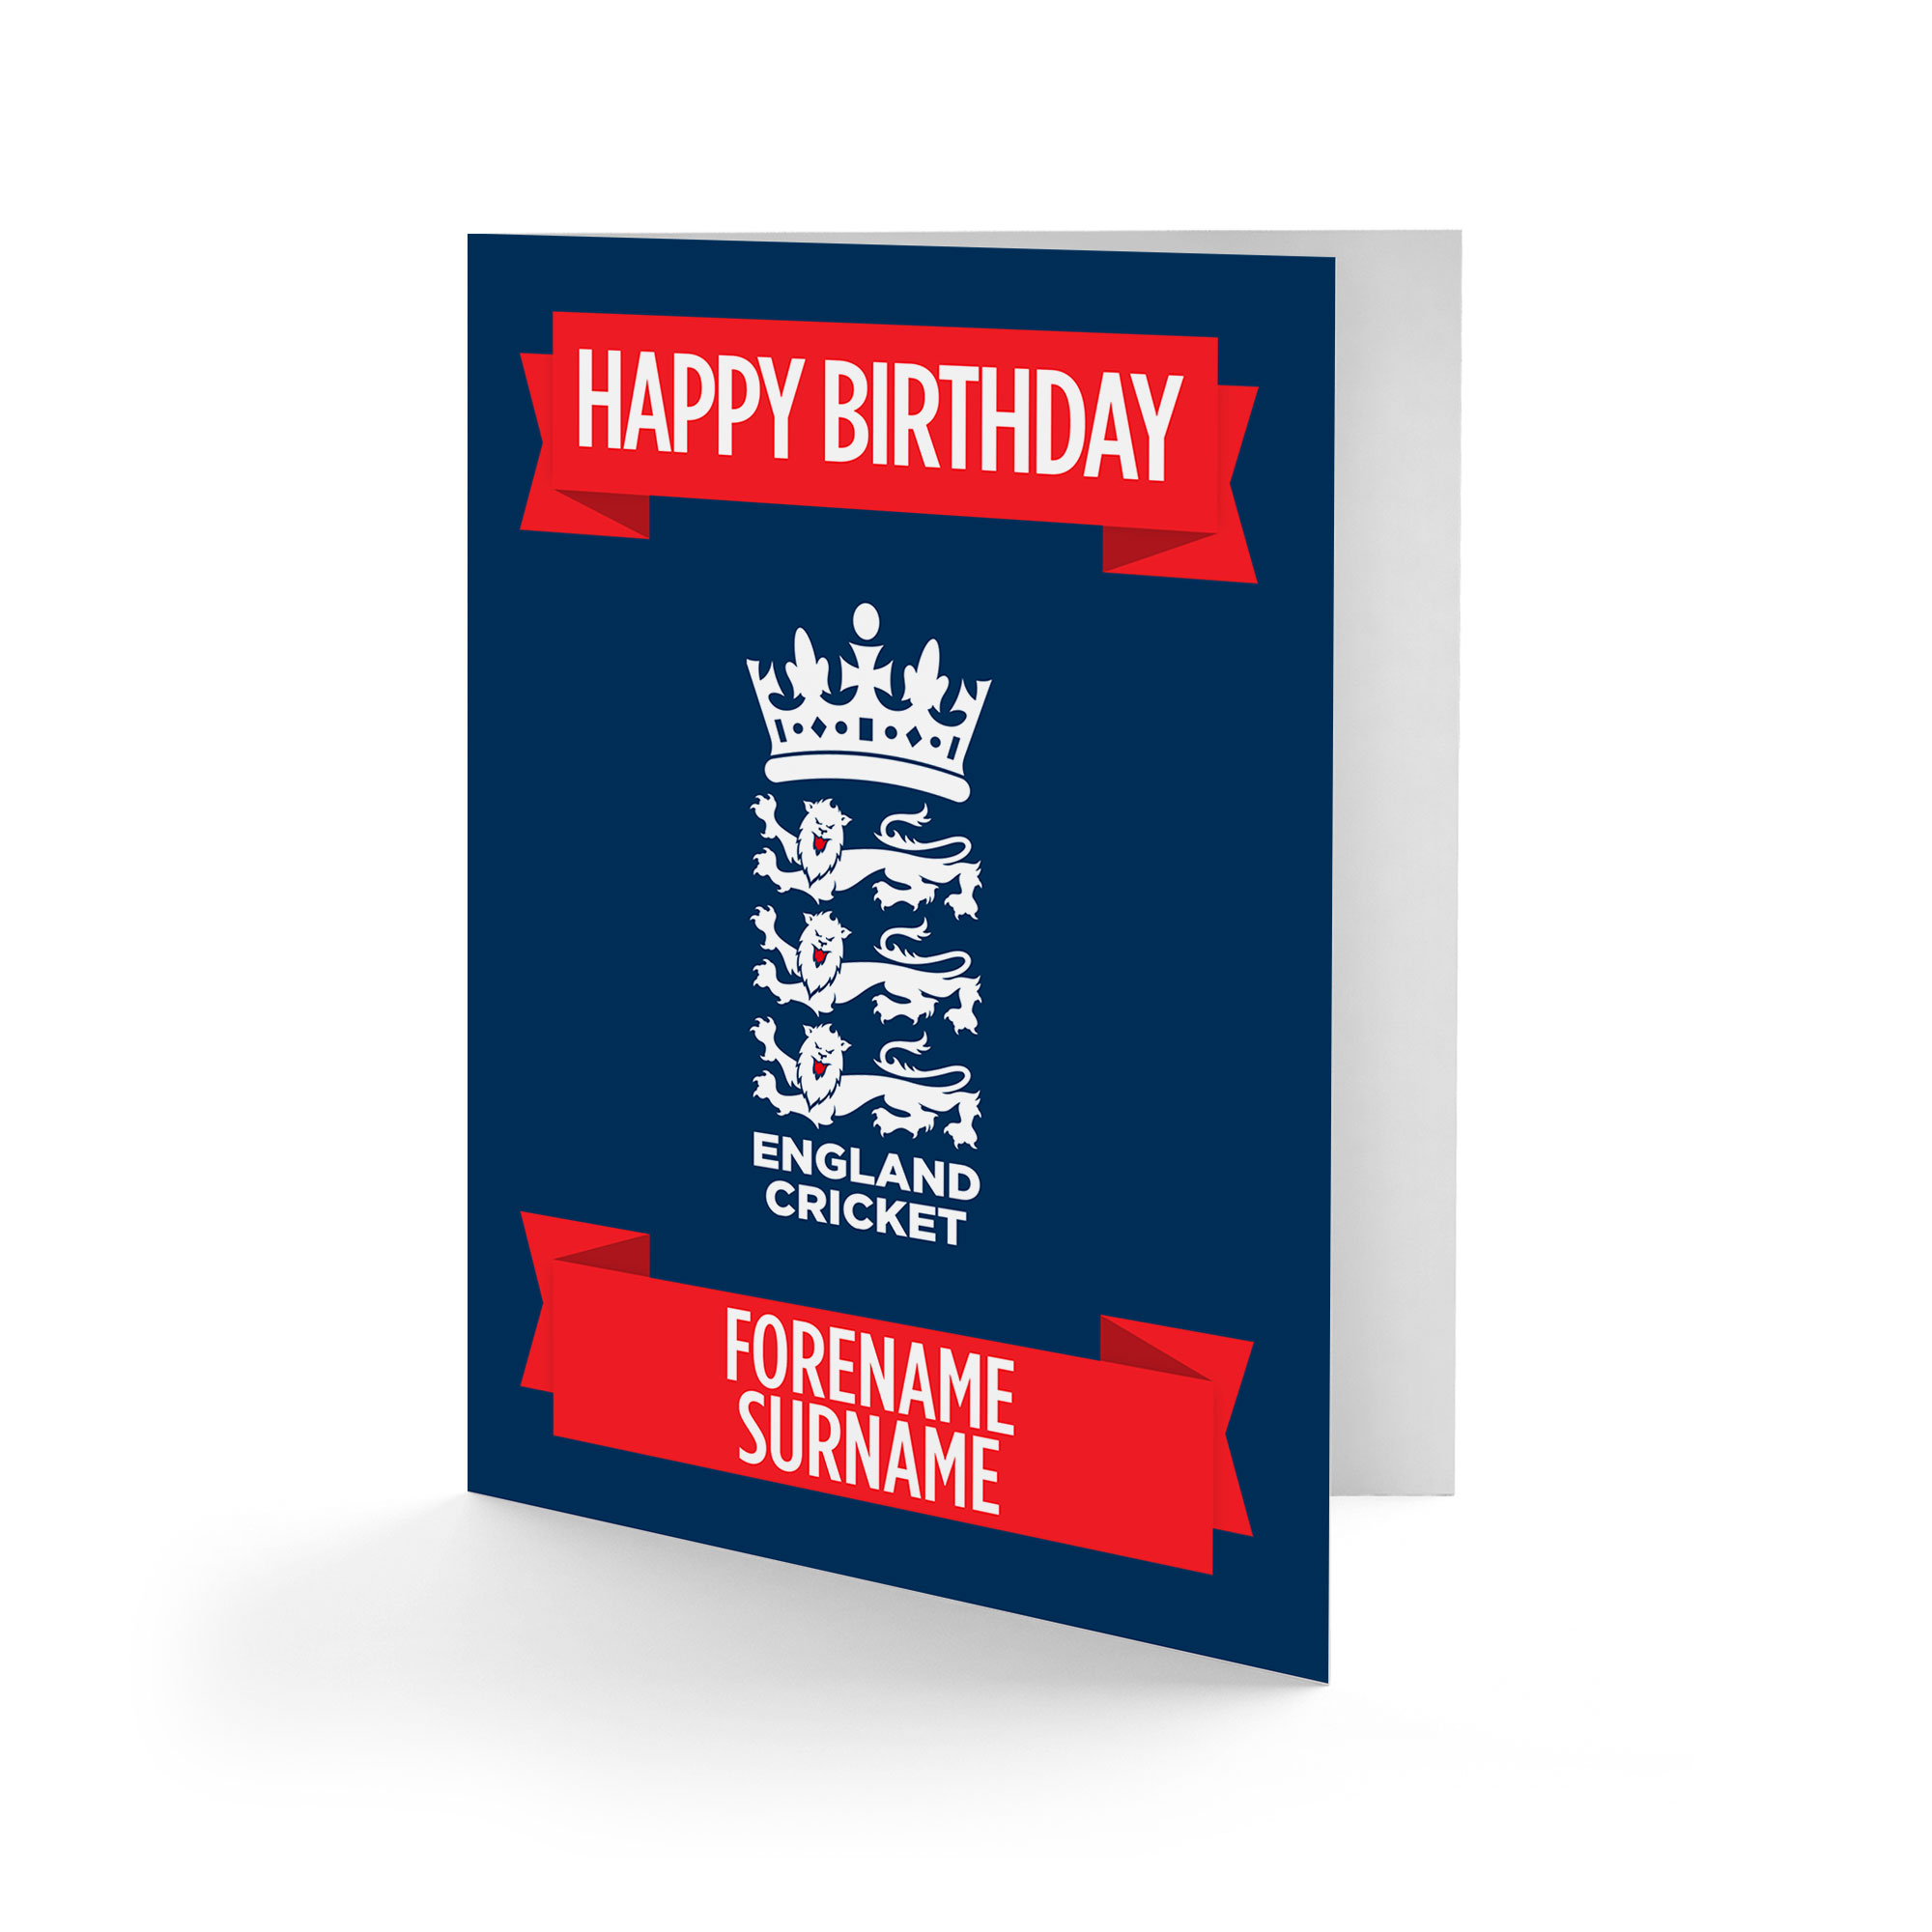 England Cricket Crest Birthday Card